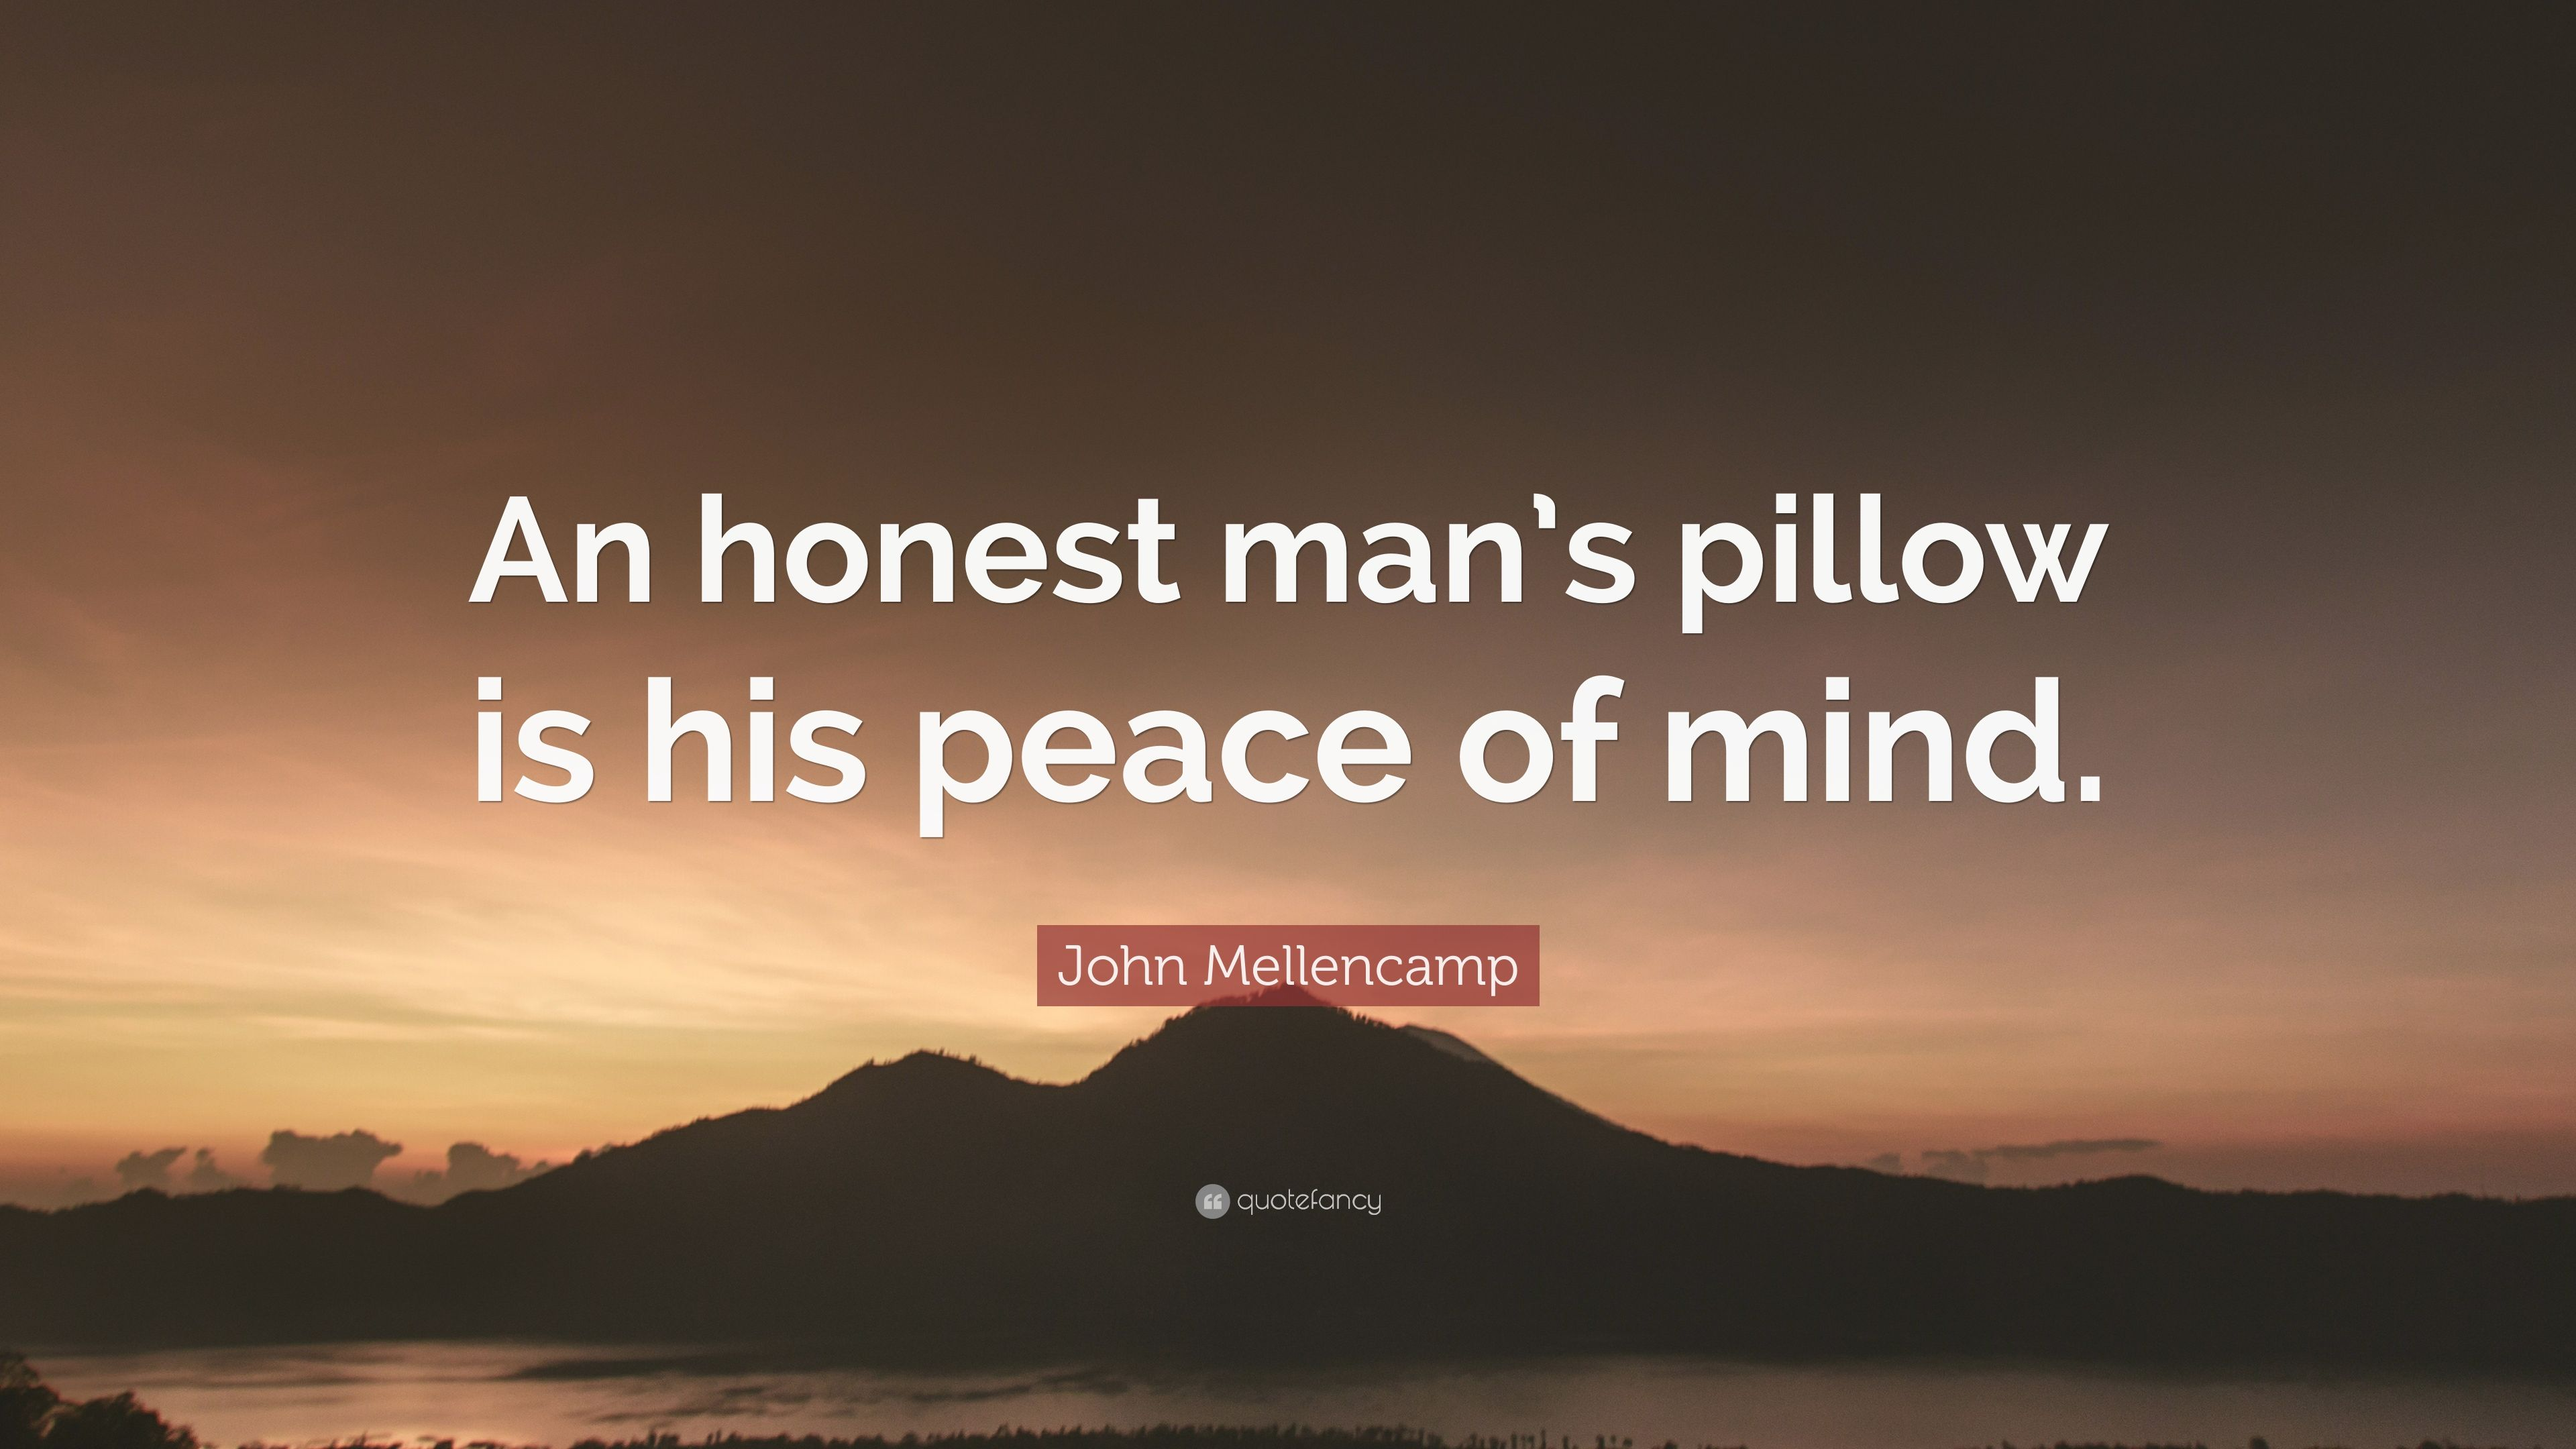 John Mellencamp Quote An Honest Mans Pillow Is His Peace Of Mind